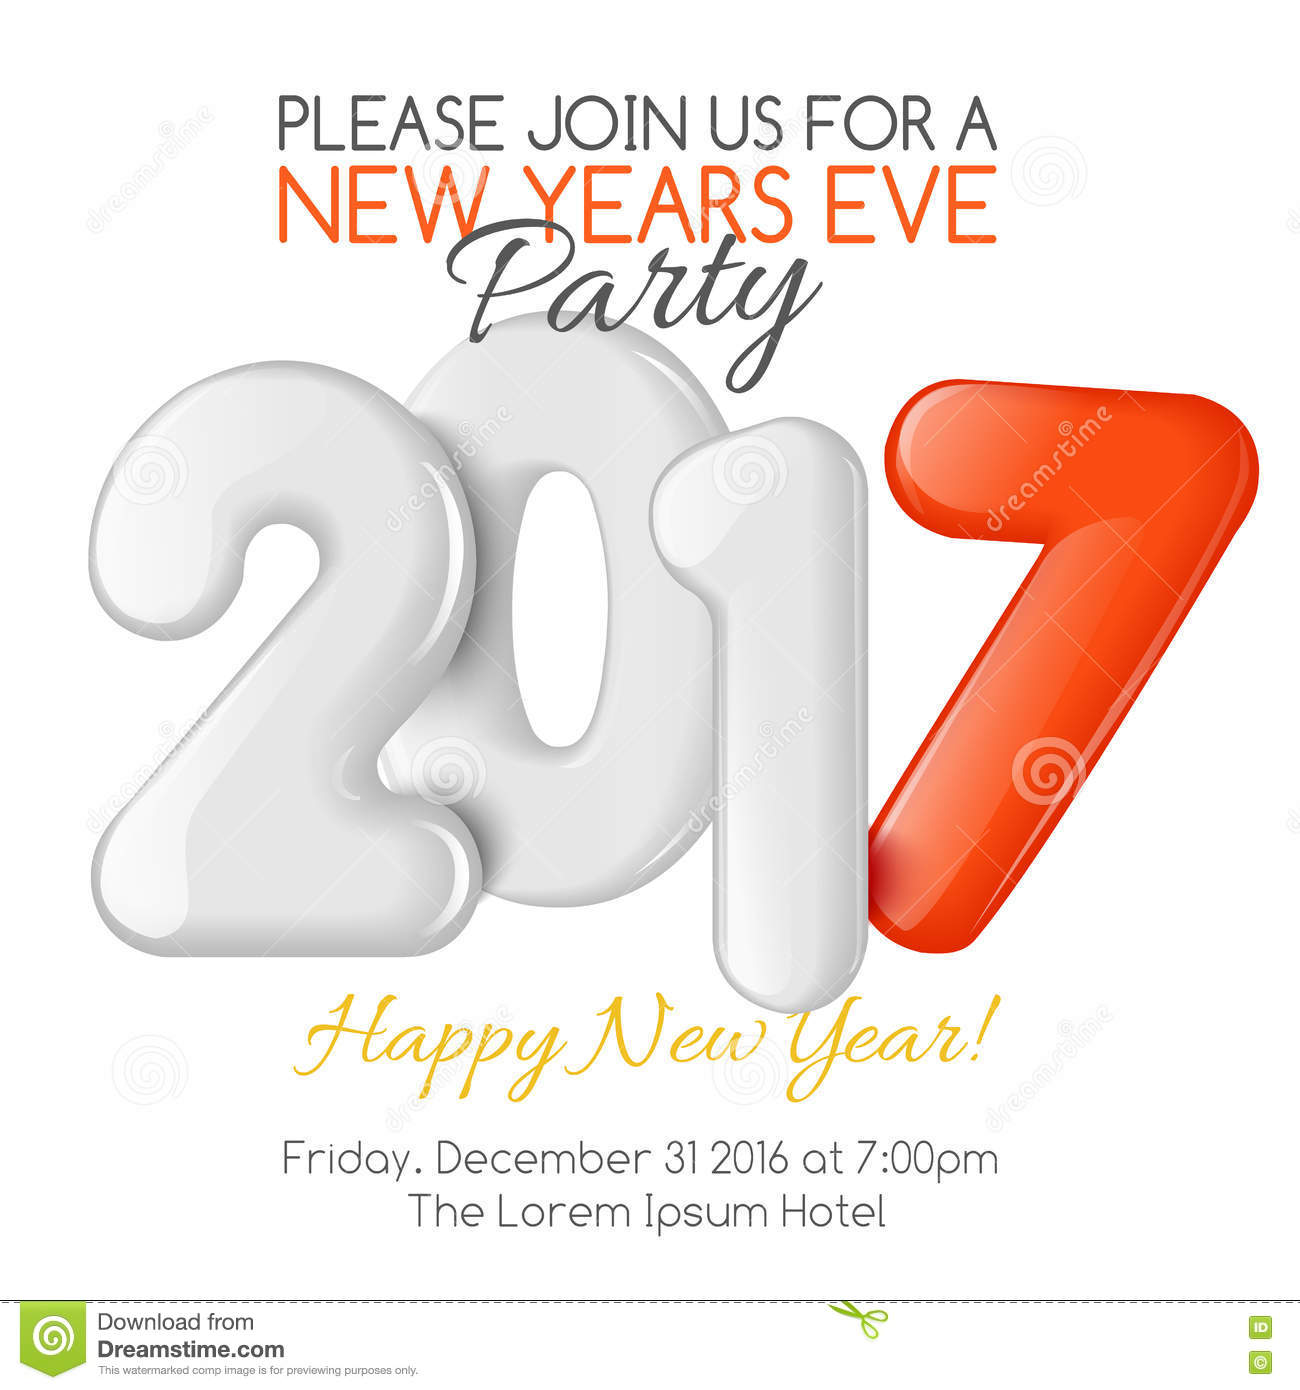 merry christmas and happy new year party invitation template merry christmas and happy new year 2017 party invitation template royalty stock photo